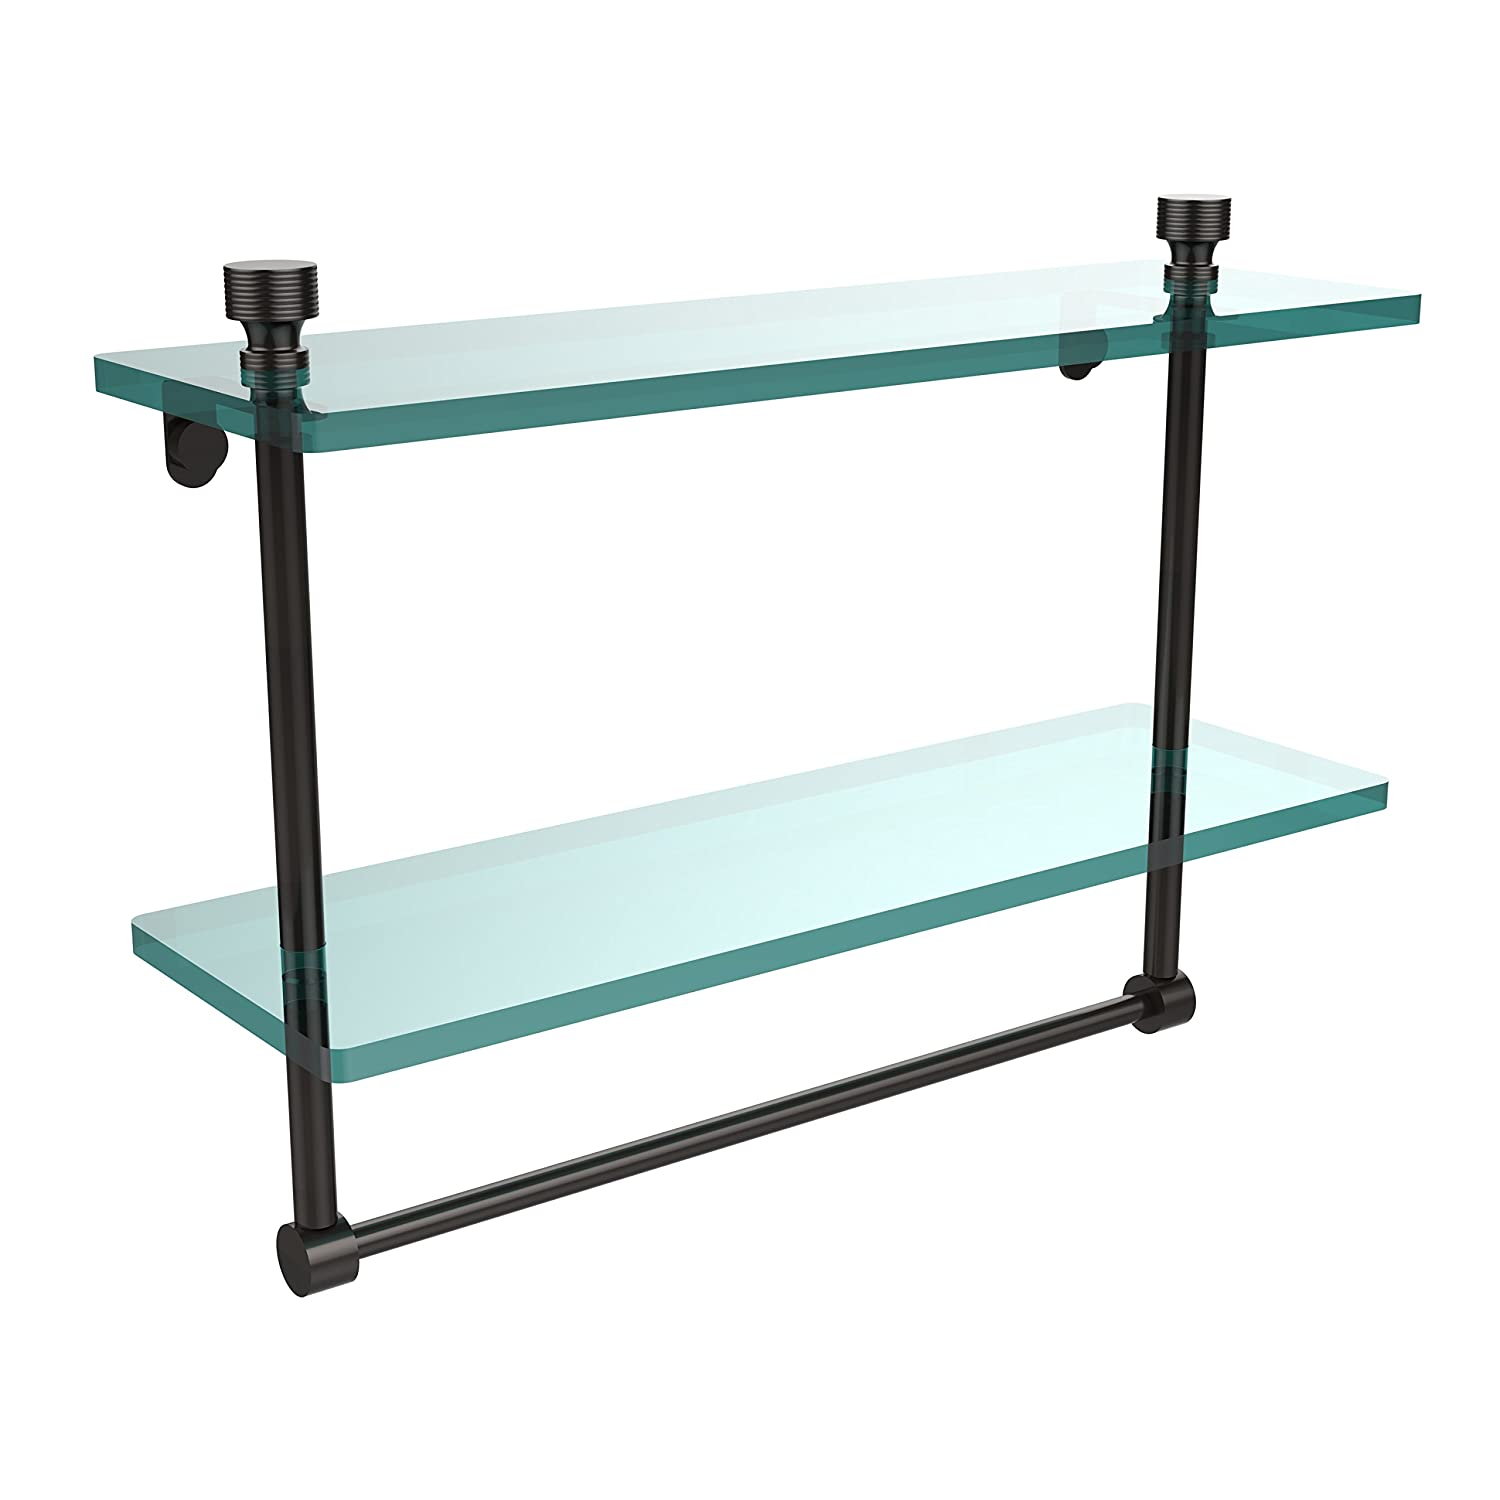 Allied Brass FT-2//16TB-BBR Foxtrot Collection 16 Inch Two Tiered Glass Shelf with Integrated Towel Bar Brushed Bronze